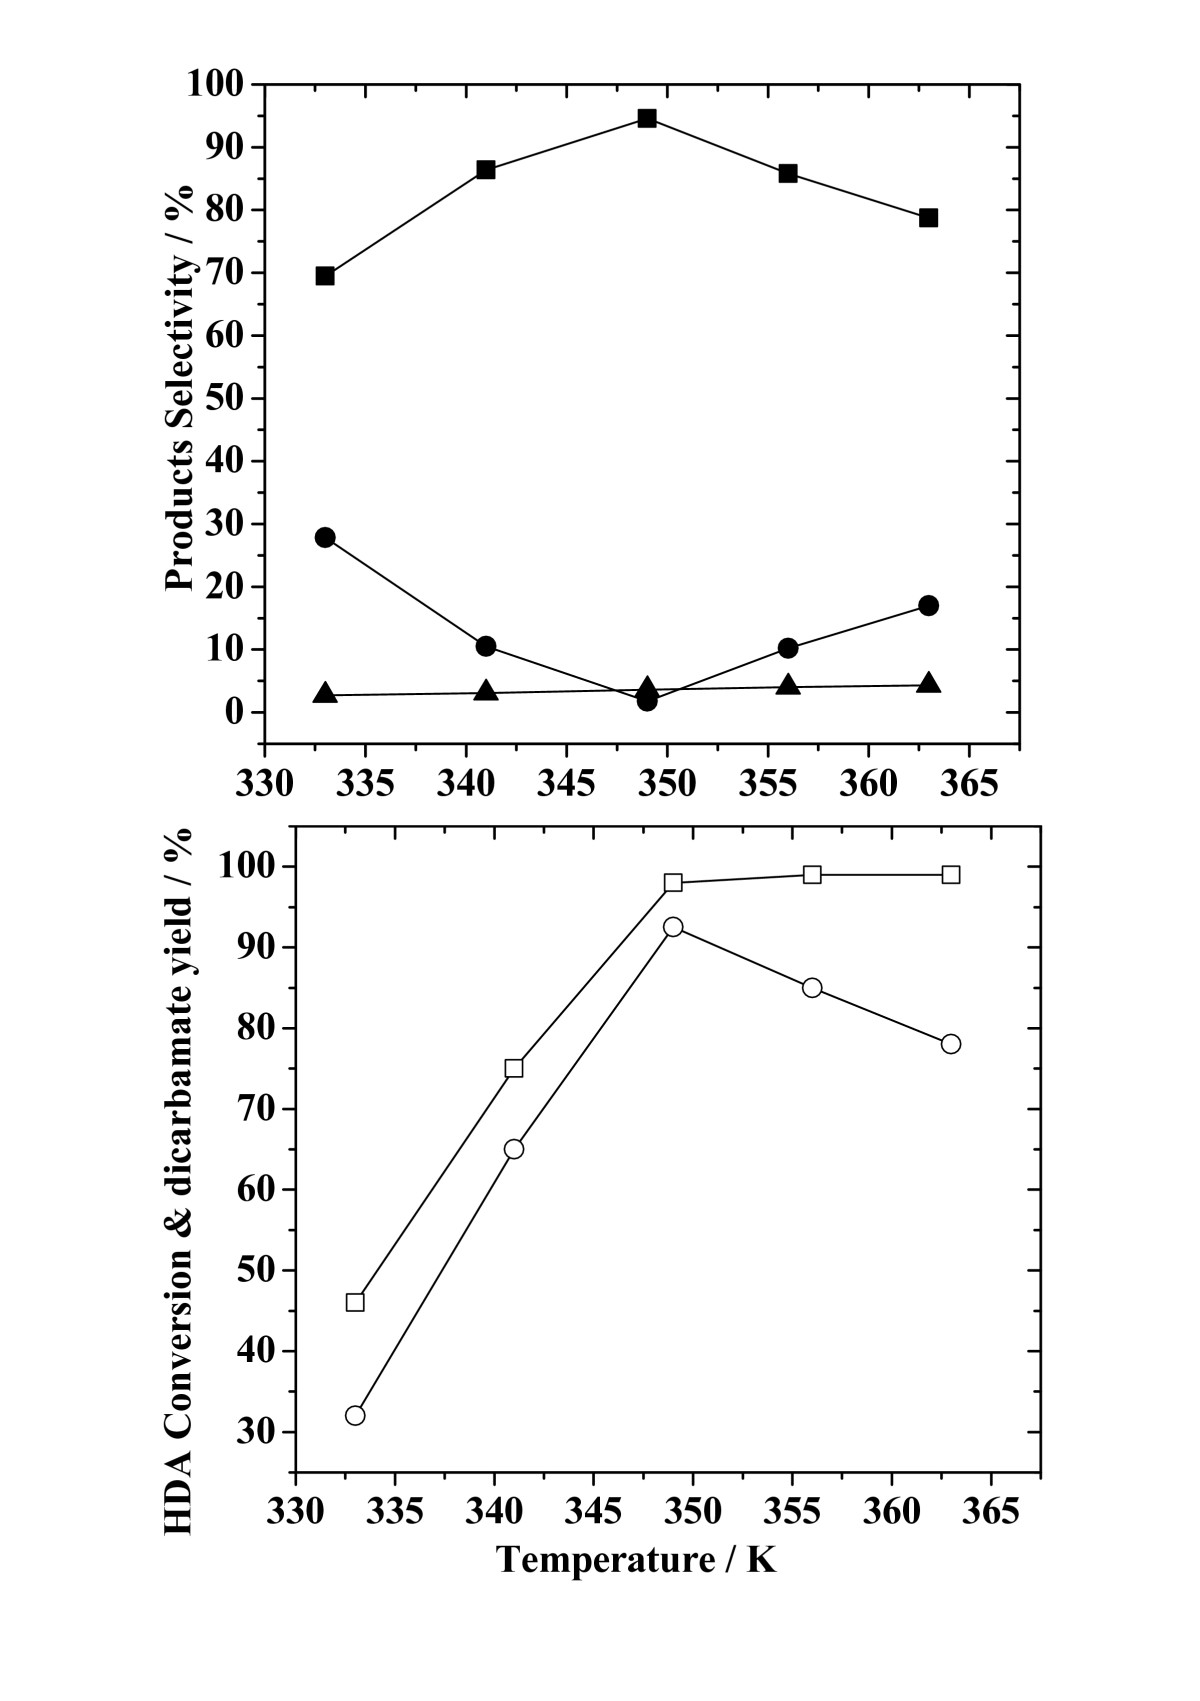 http://static-content.springer.com/image/art%3A10.1186%2F1752-153X-1-27/MediaObjects/13065_2007_Article_27_Fig4_HTML.jpg